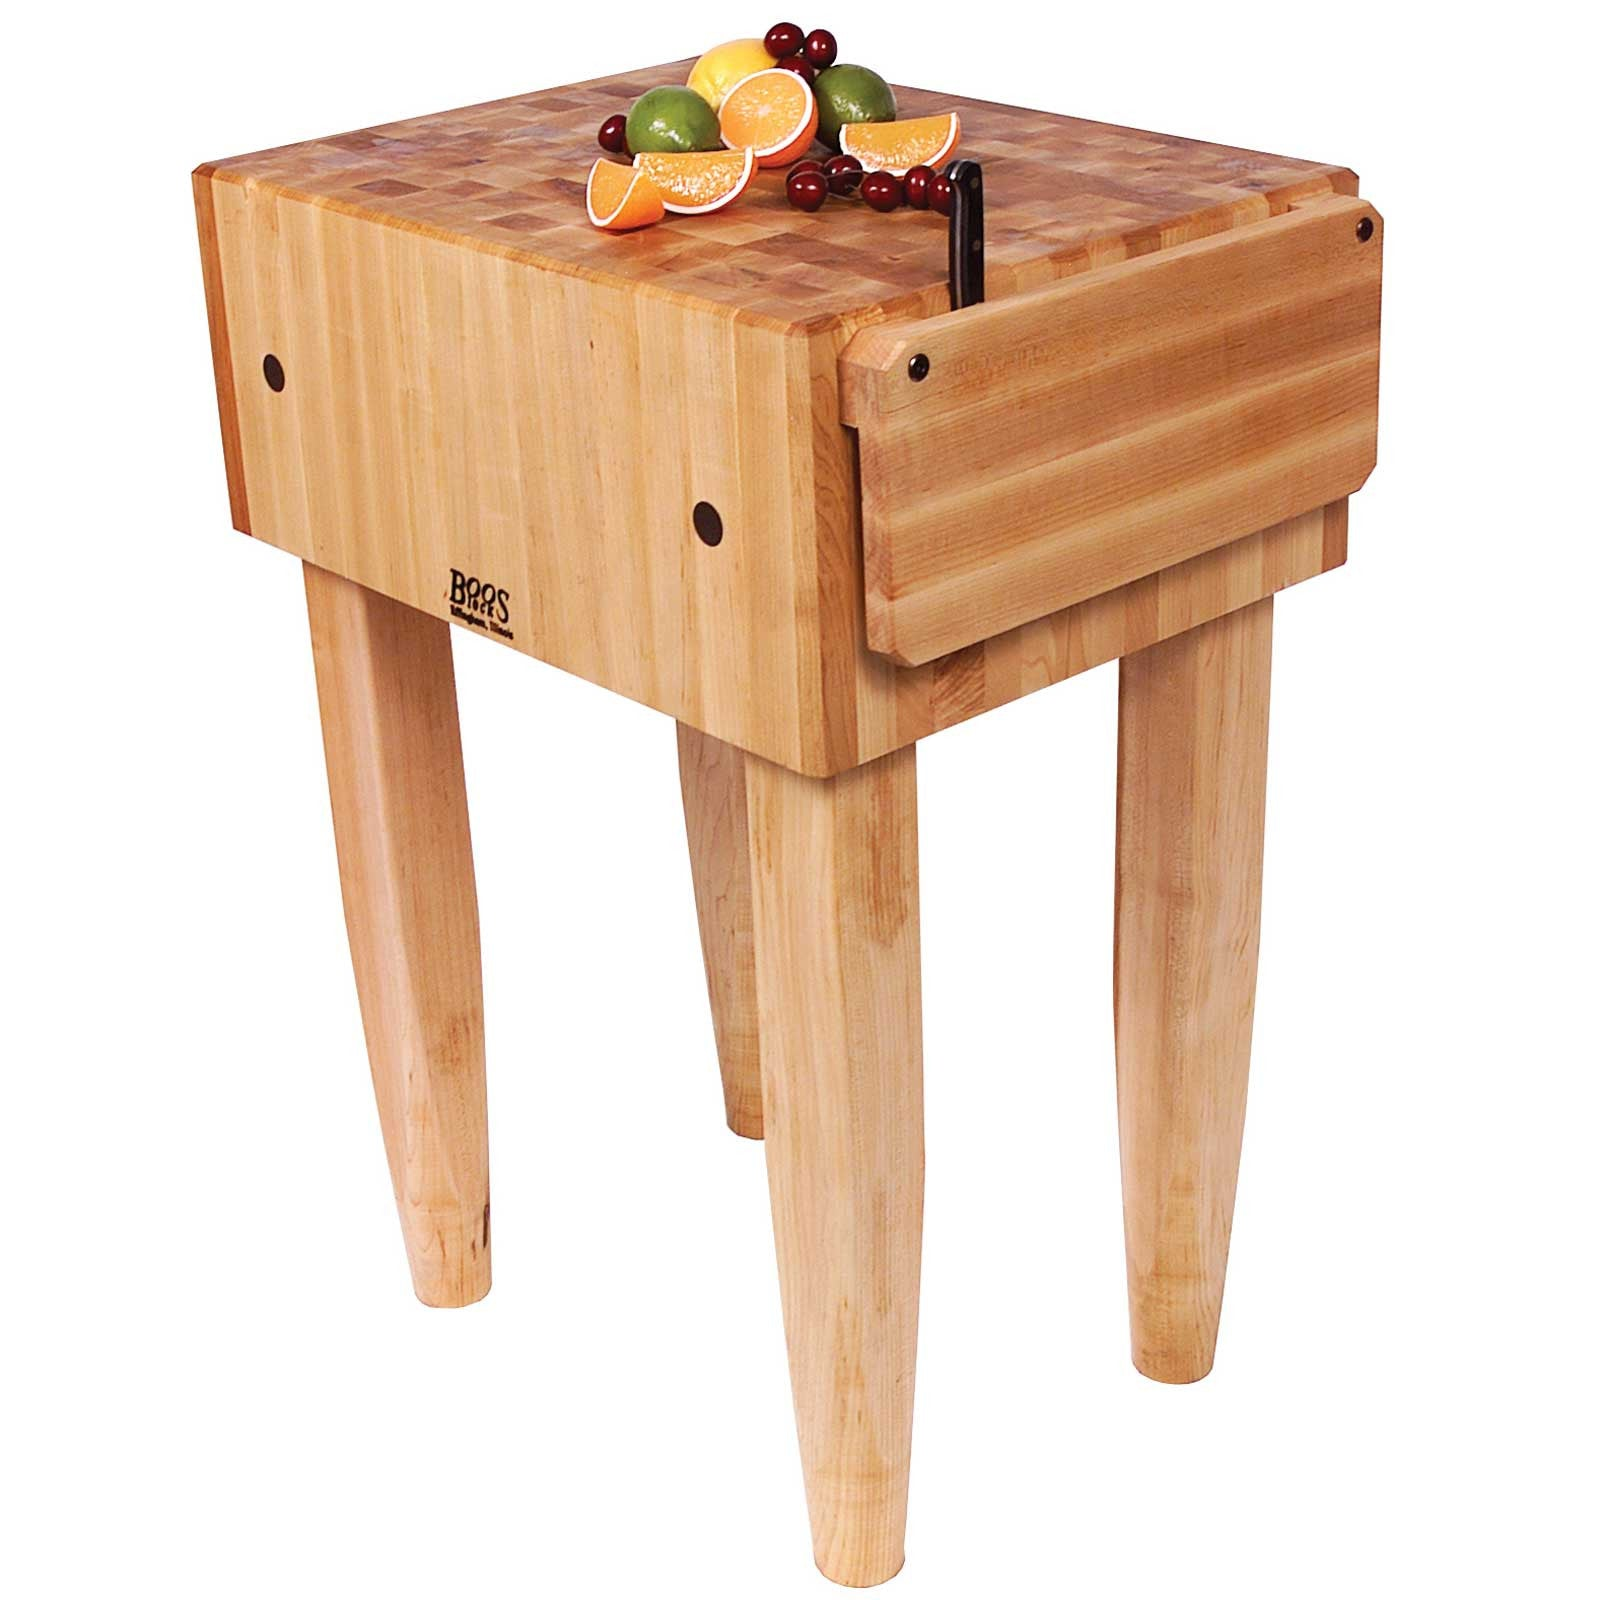 "John Boos 24"" x 24"" x 10"" Maple Top PCA Butcher Block"